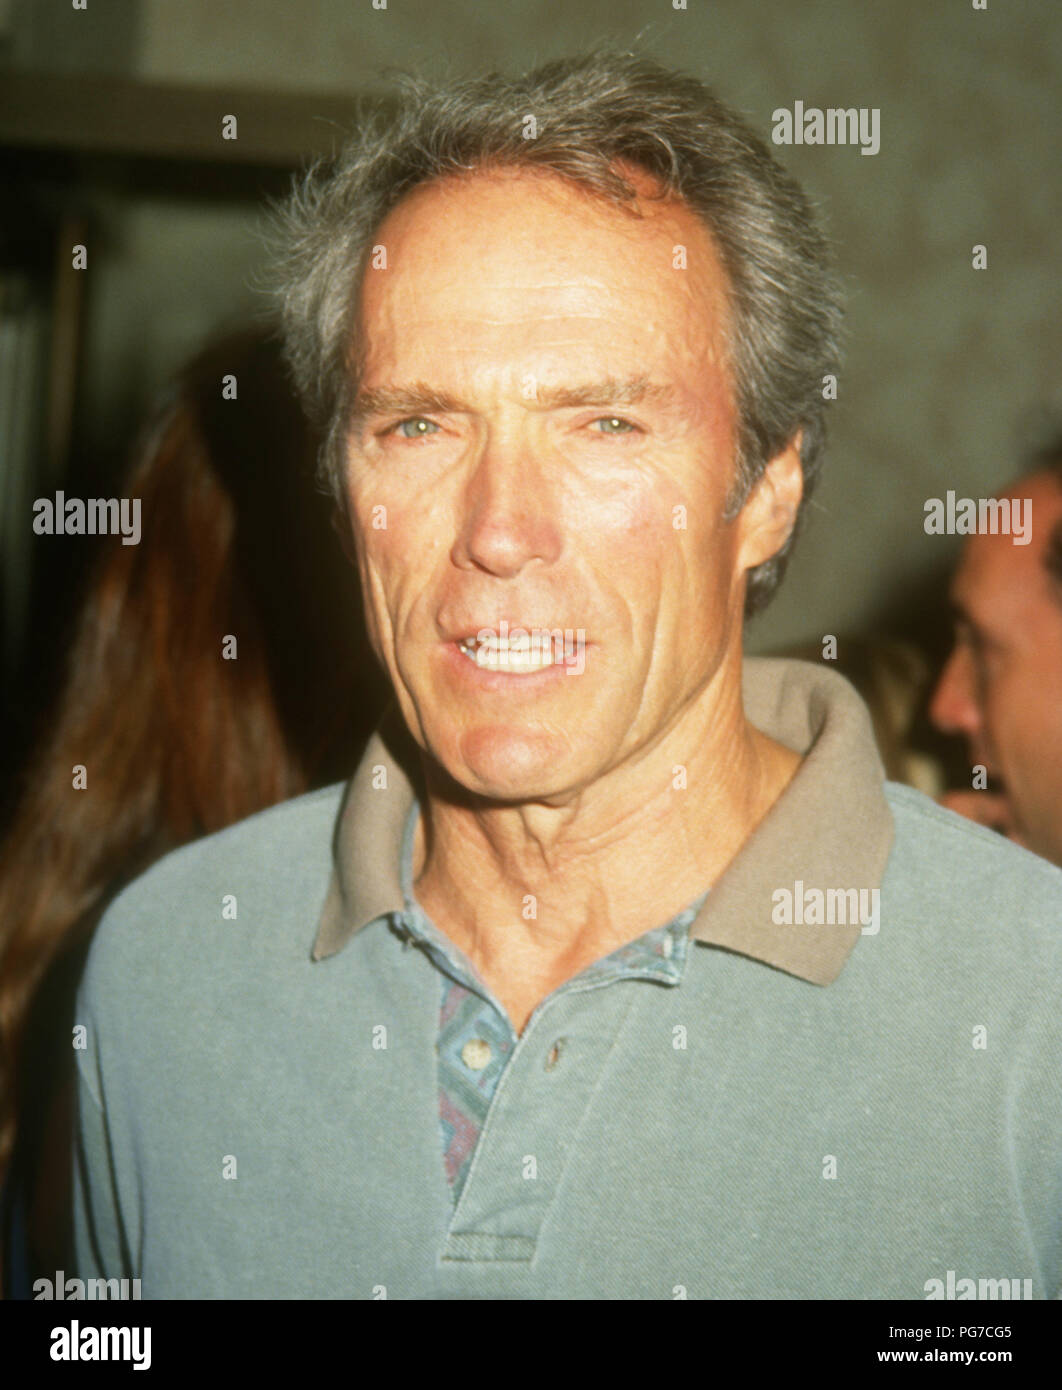 Actor Clint Eastwood Stock Photos & Actor Clint Eastwood Stock